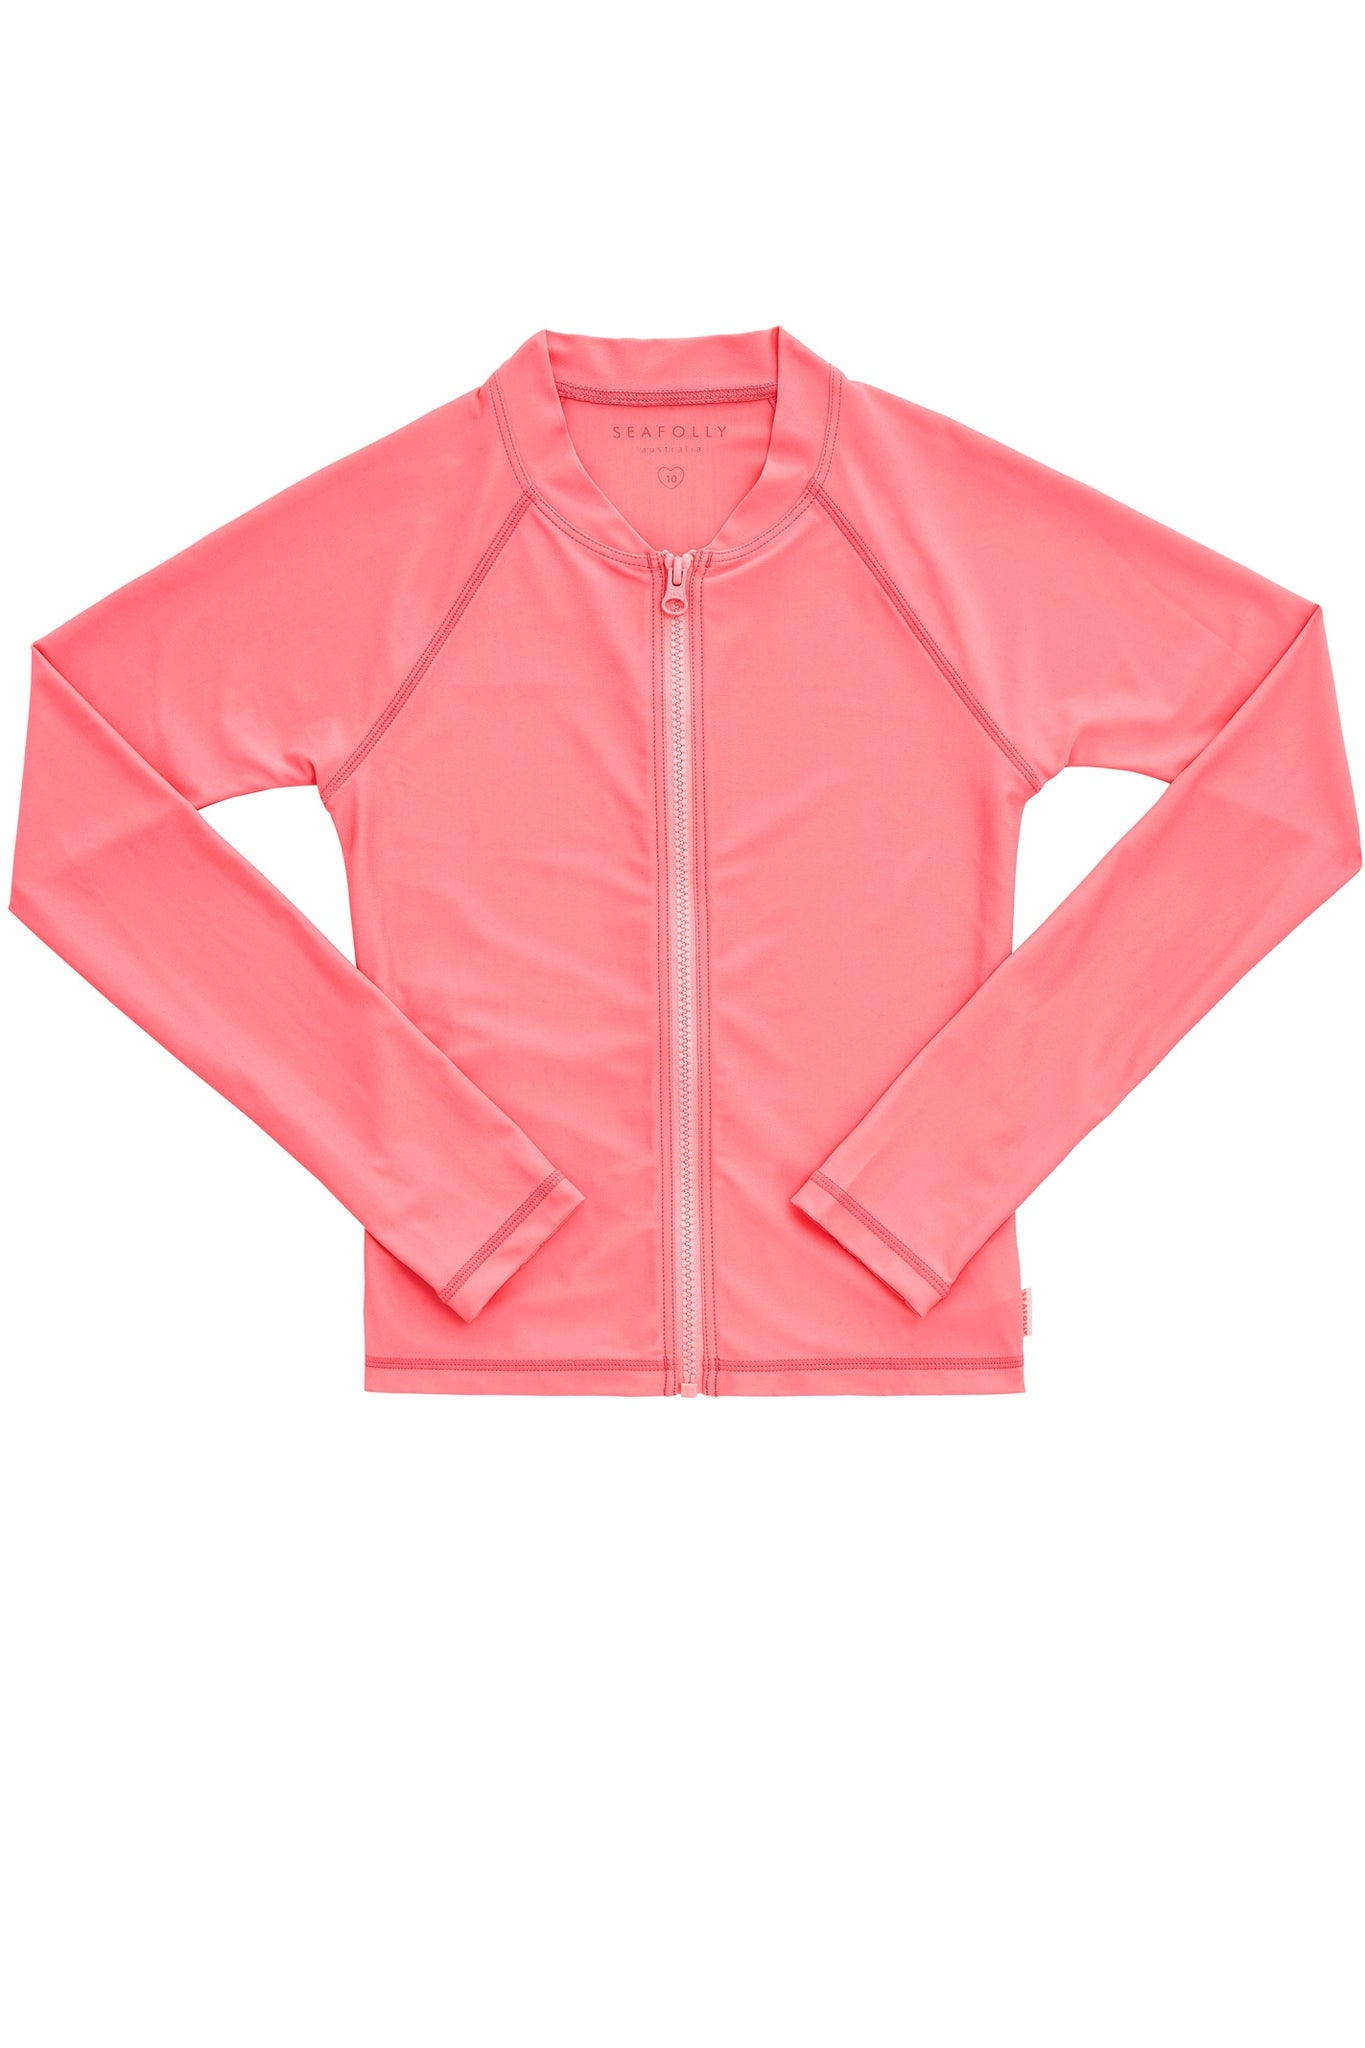 Seafolly Sweet Summer L/S Zip Rashie